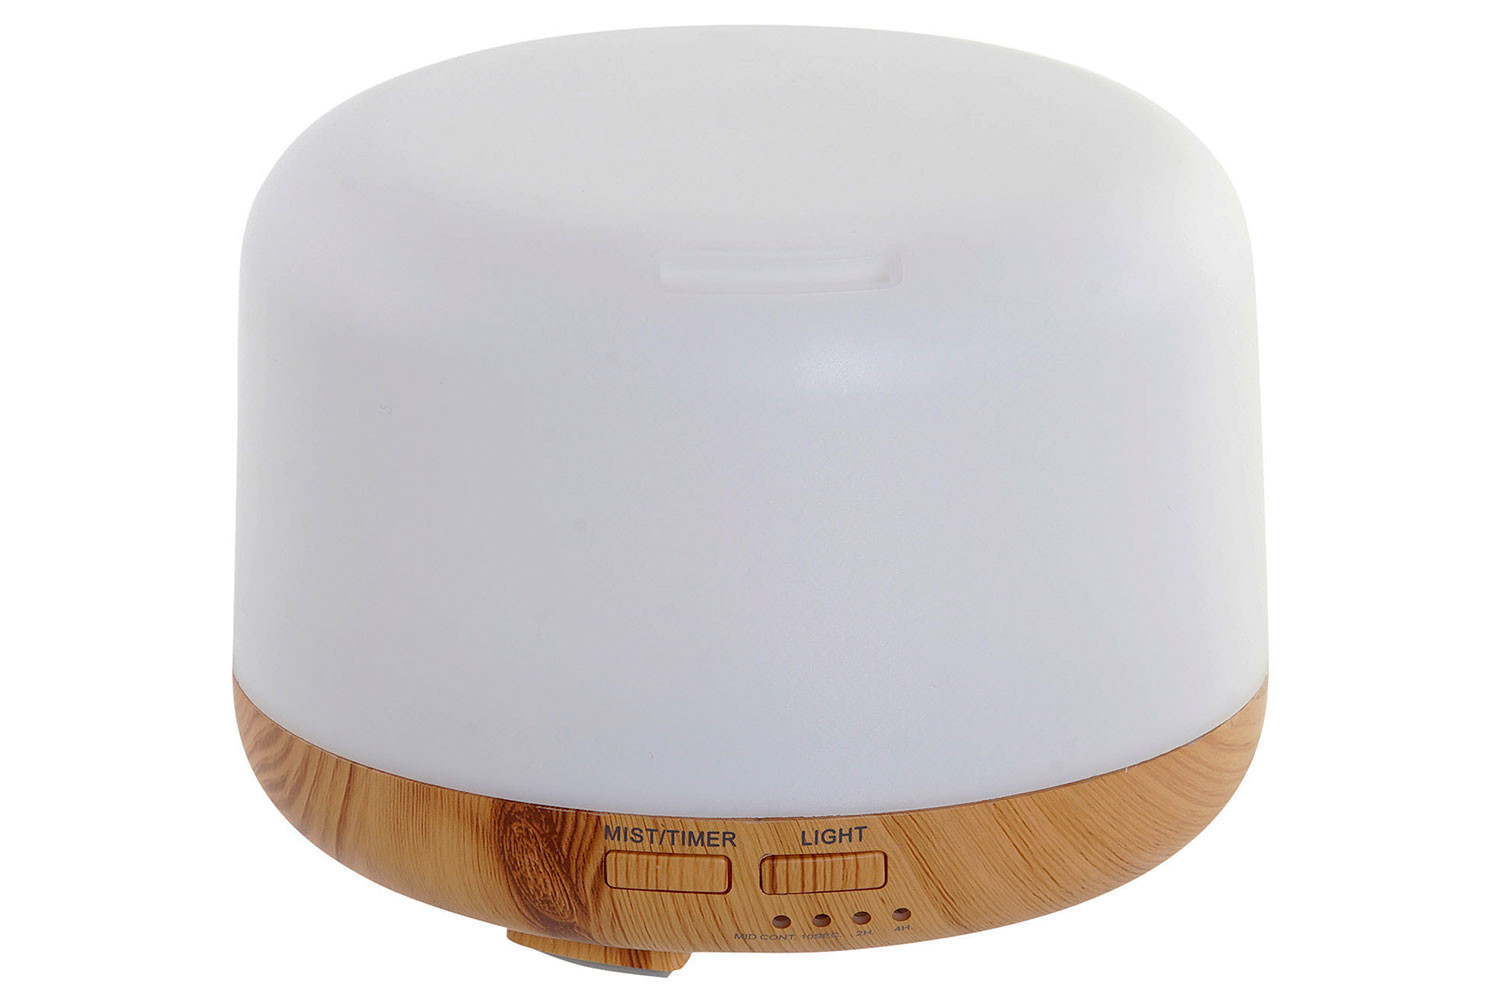 Humidifier Diffuser Aromatherapy Led 300ml 13,5X13,5X9,5cm